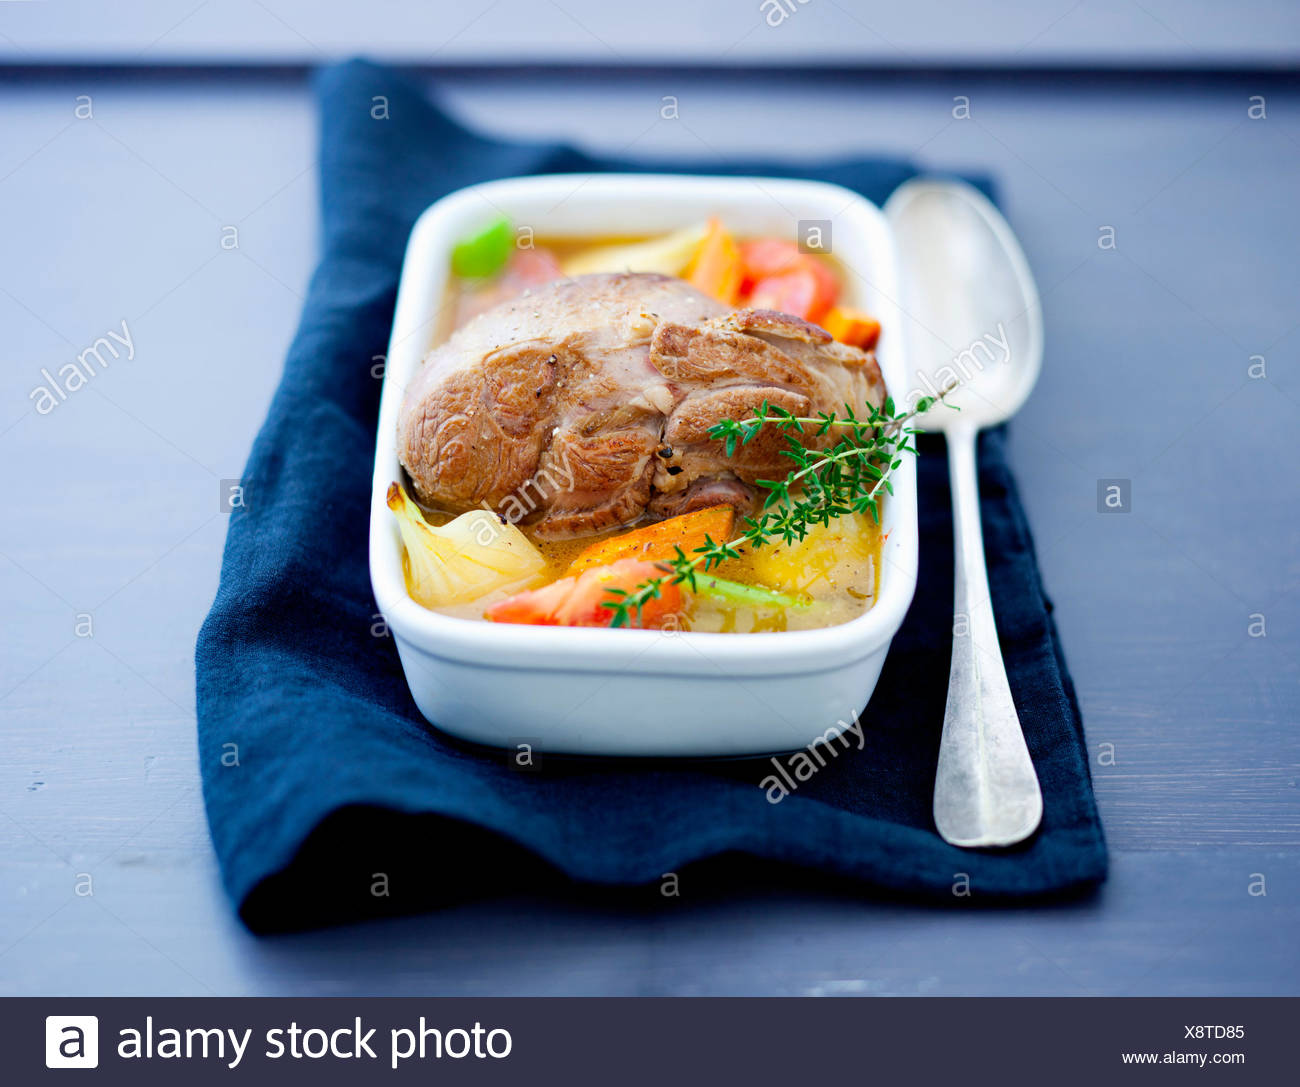 Leg of lamb with vegetables - Stock Image